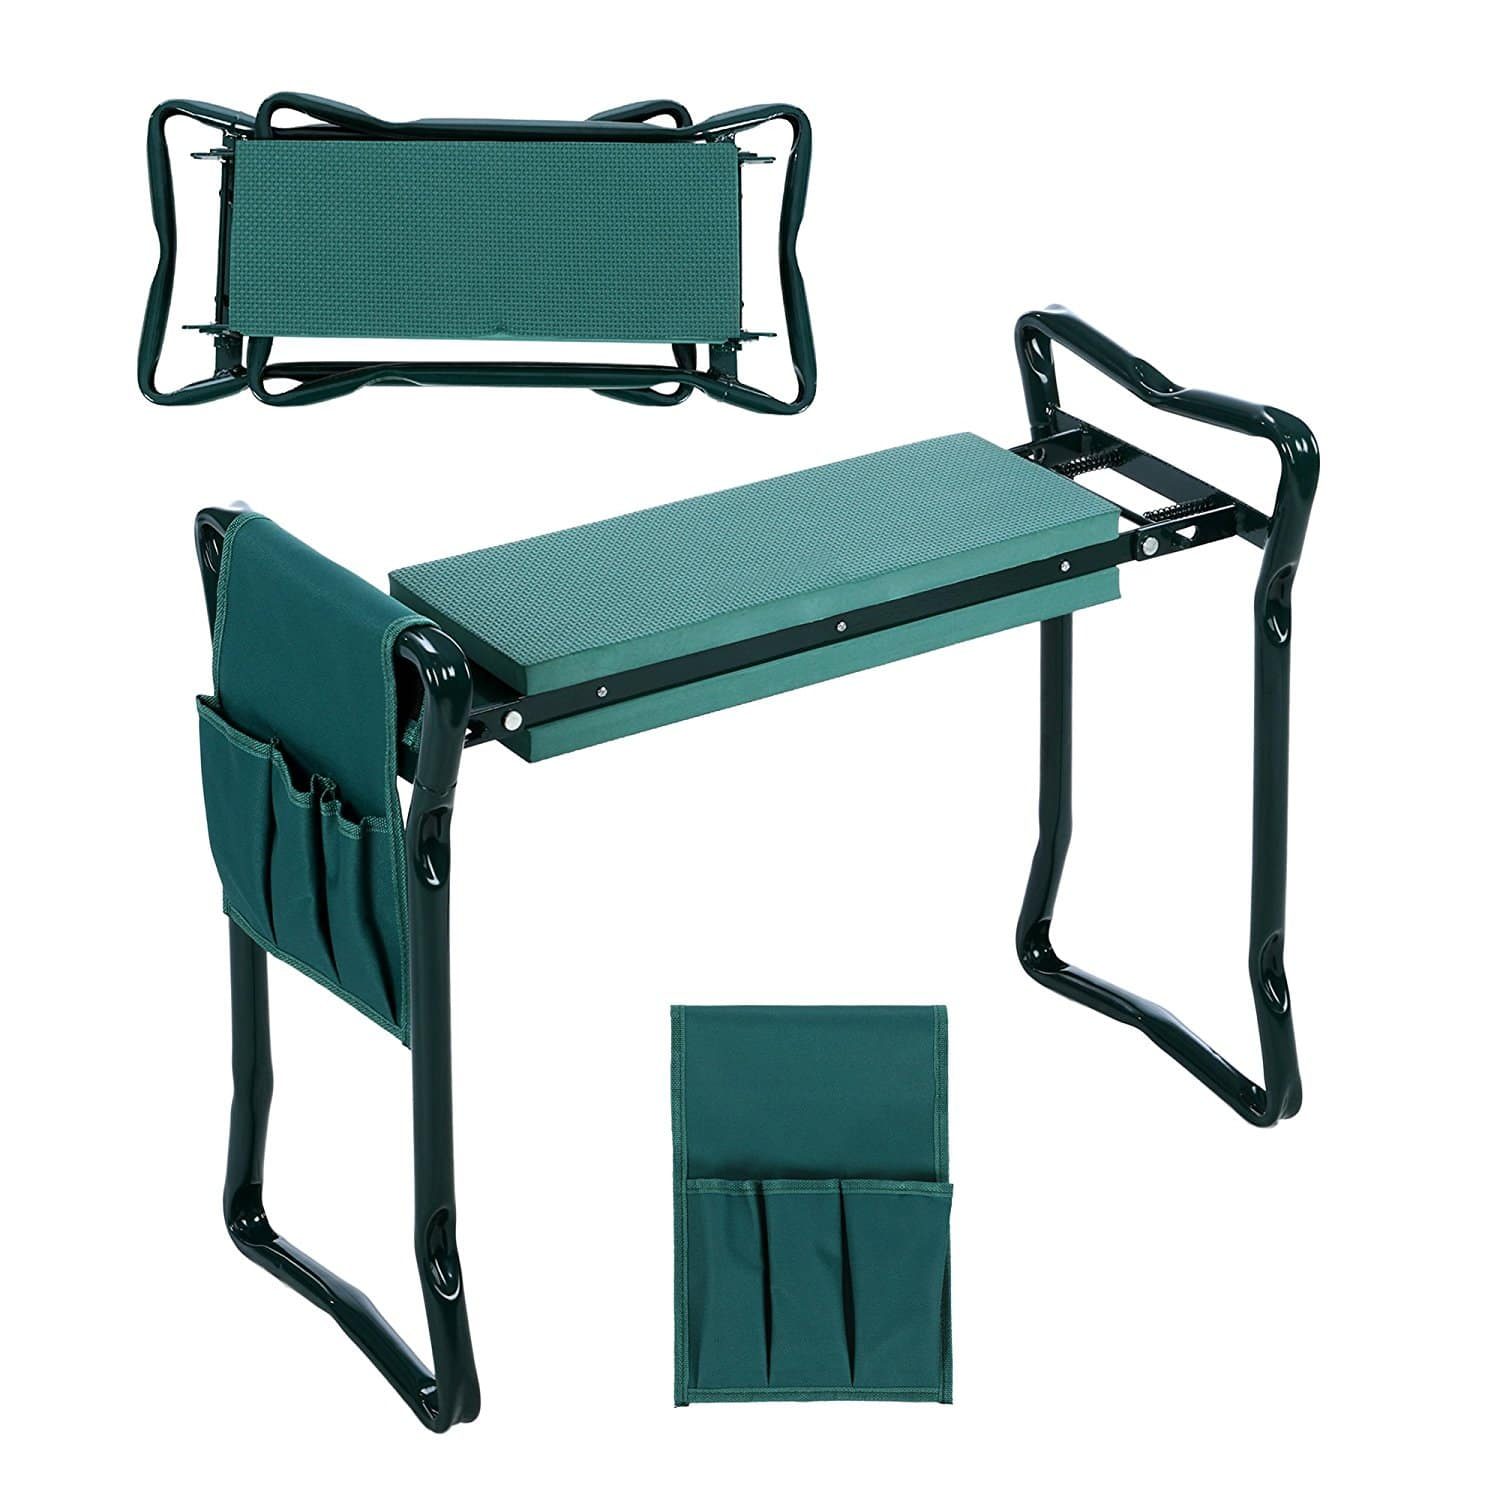 Folding Garden Seat and Kneeling Pad with Tool Pouch - $18.19 w/Code + Free Shipping